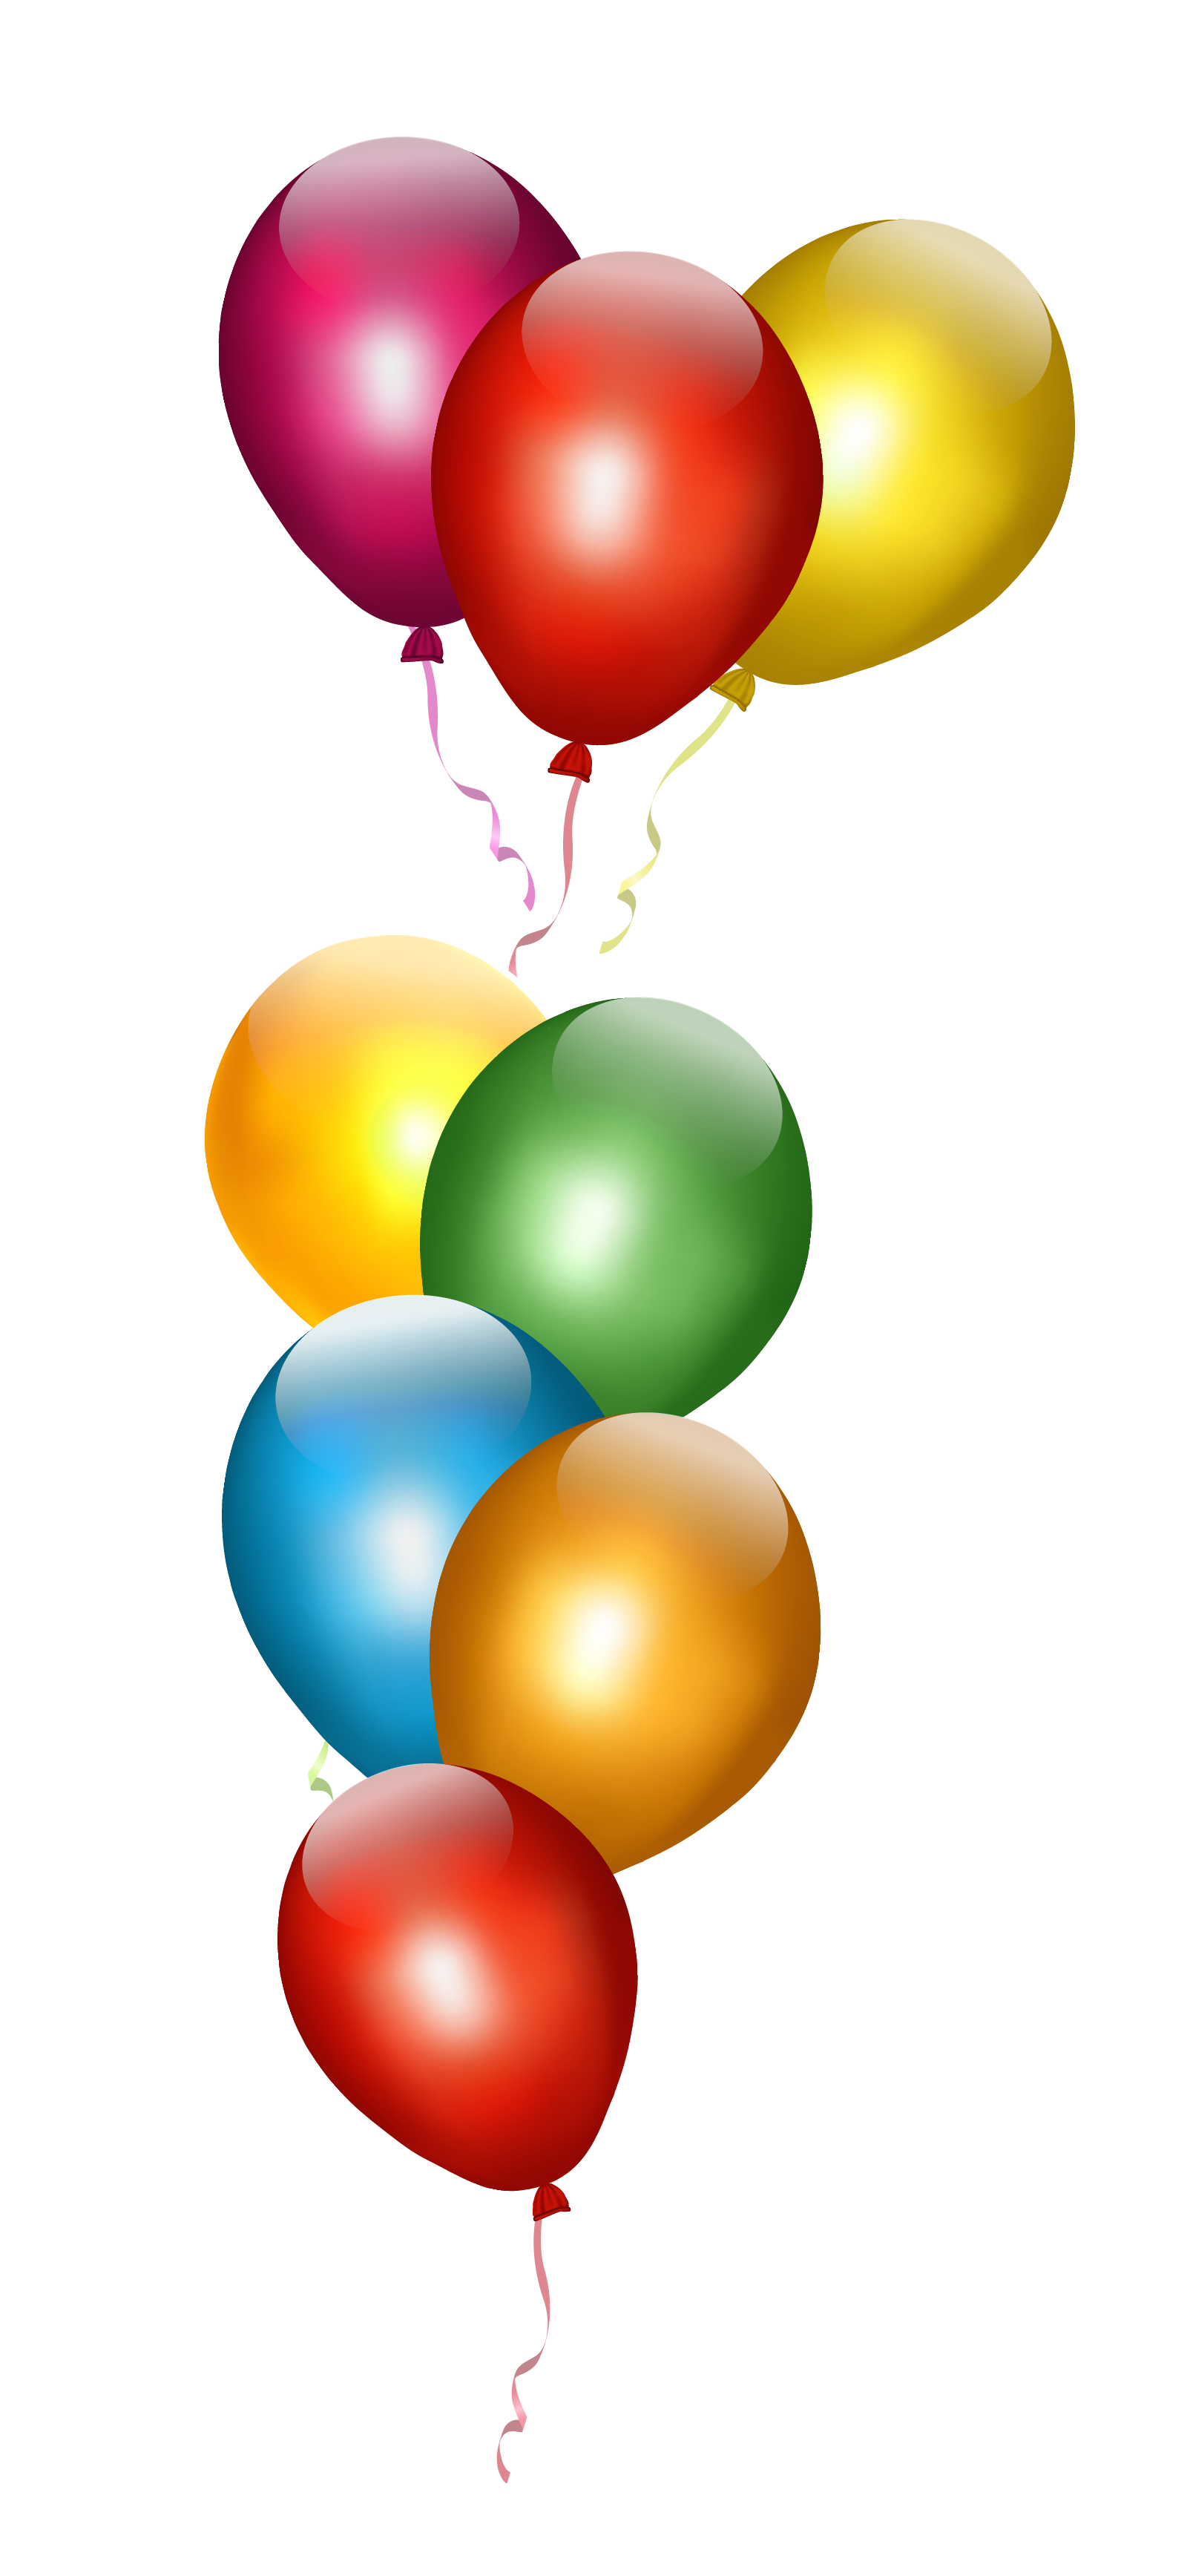 Toy Gift Balloon Birthday Party Balloons Transparent PNG Image